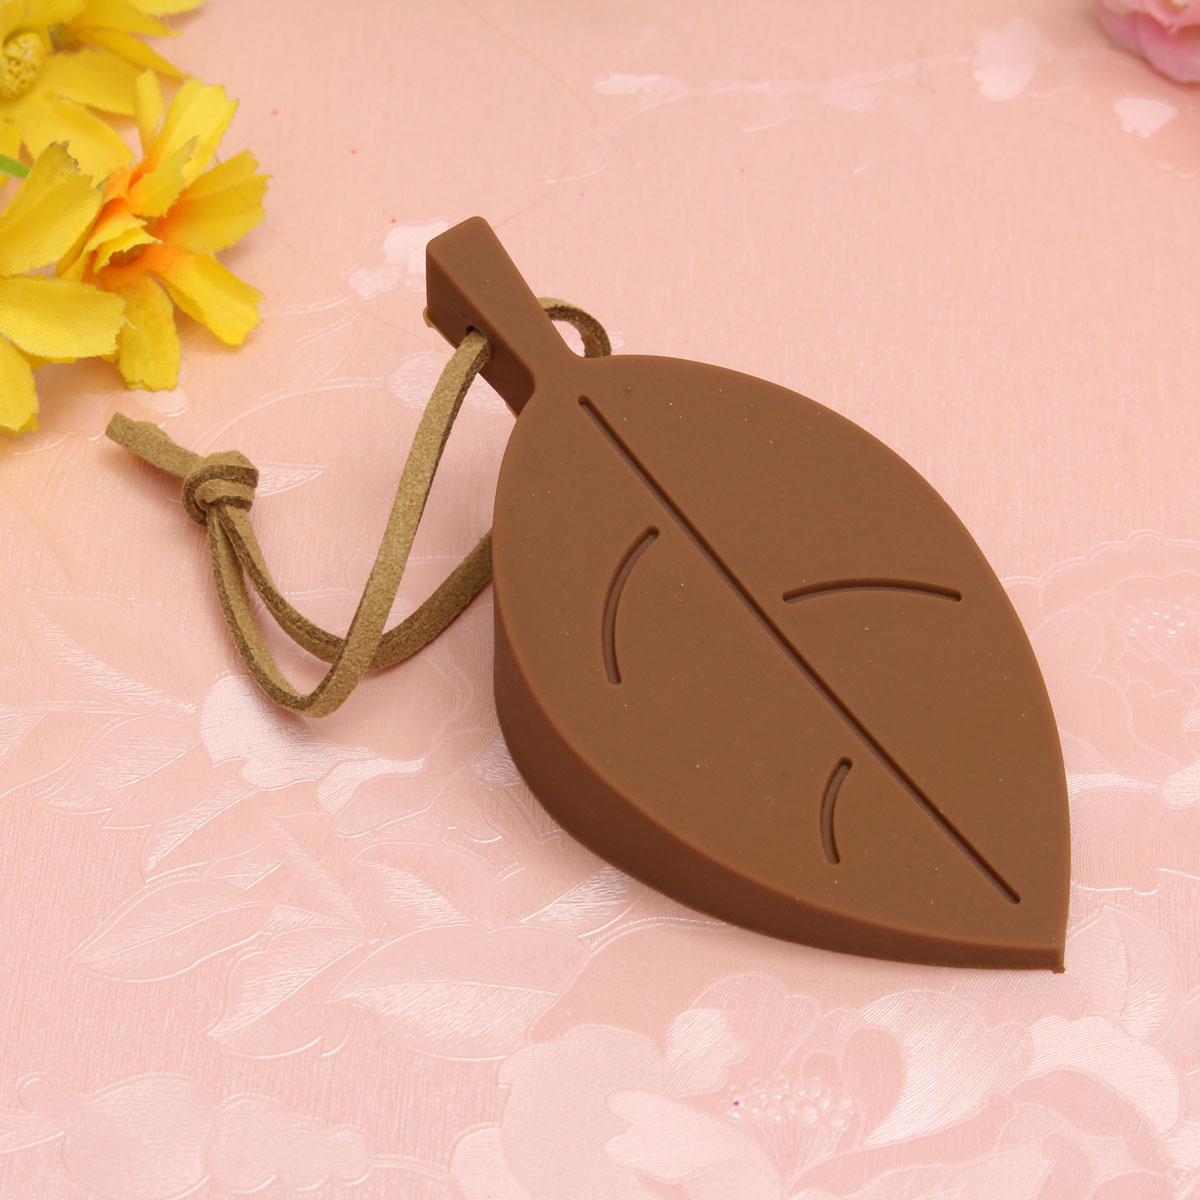 Silicone Leaves Design Door Window Stopper Jammer Guard Baby Safety Protector Home